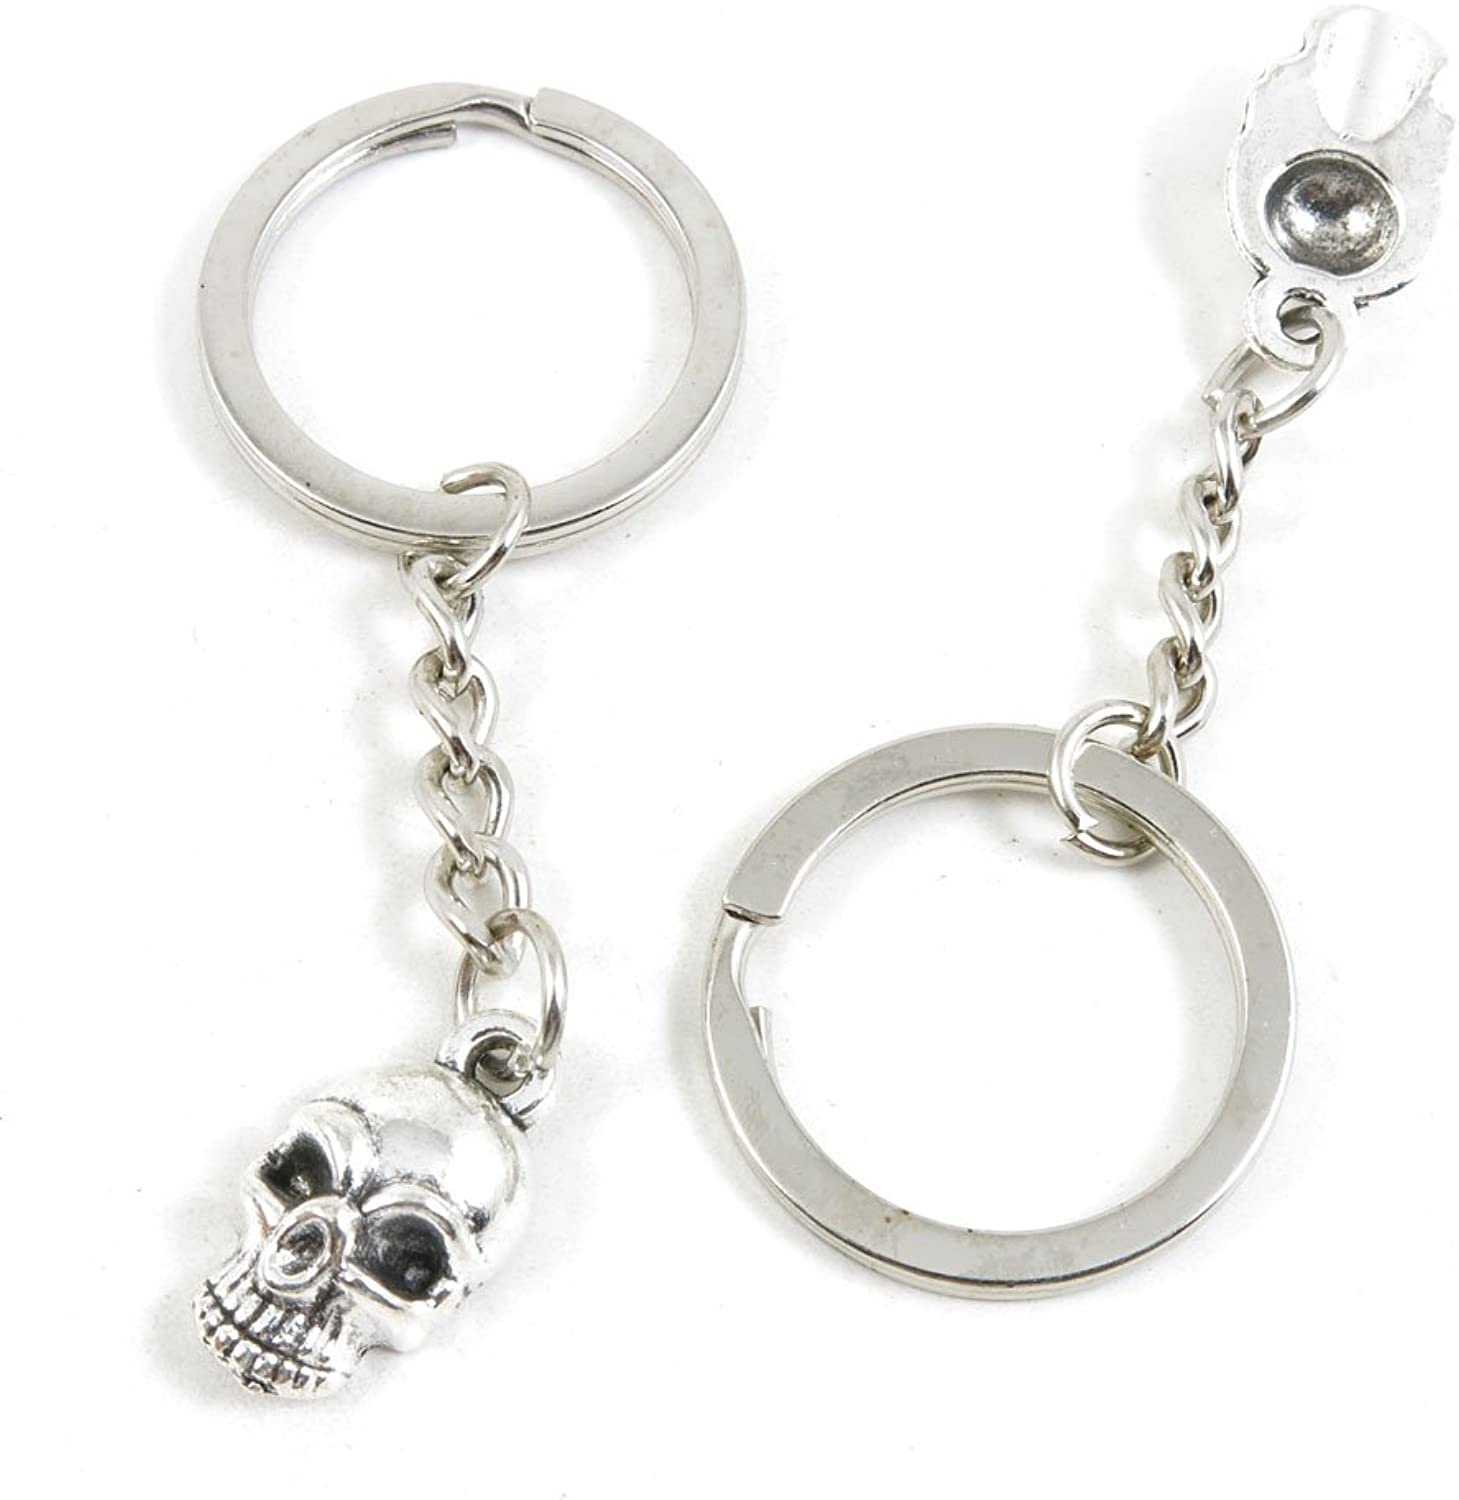 170 Pieces Fashion Jewelry Keyring Keychain Door Car Key Tag Ring Chain Supplier Supply Wholesale Bulk Lots J7BE7 Skull